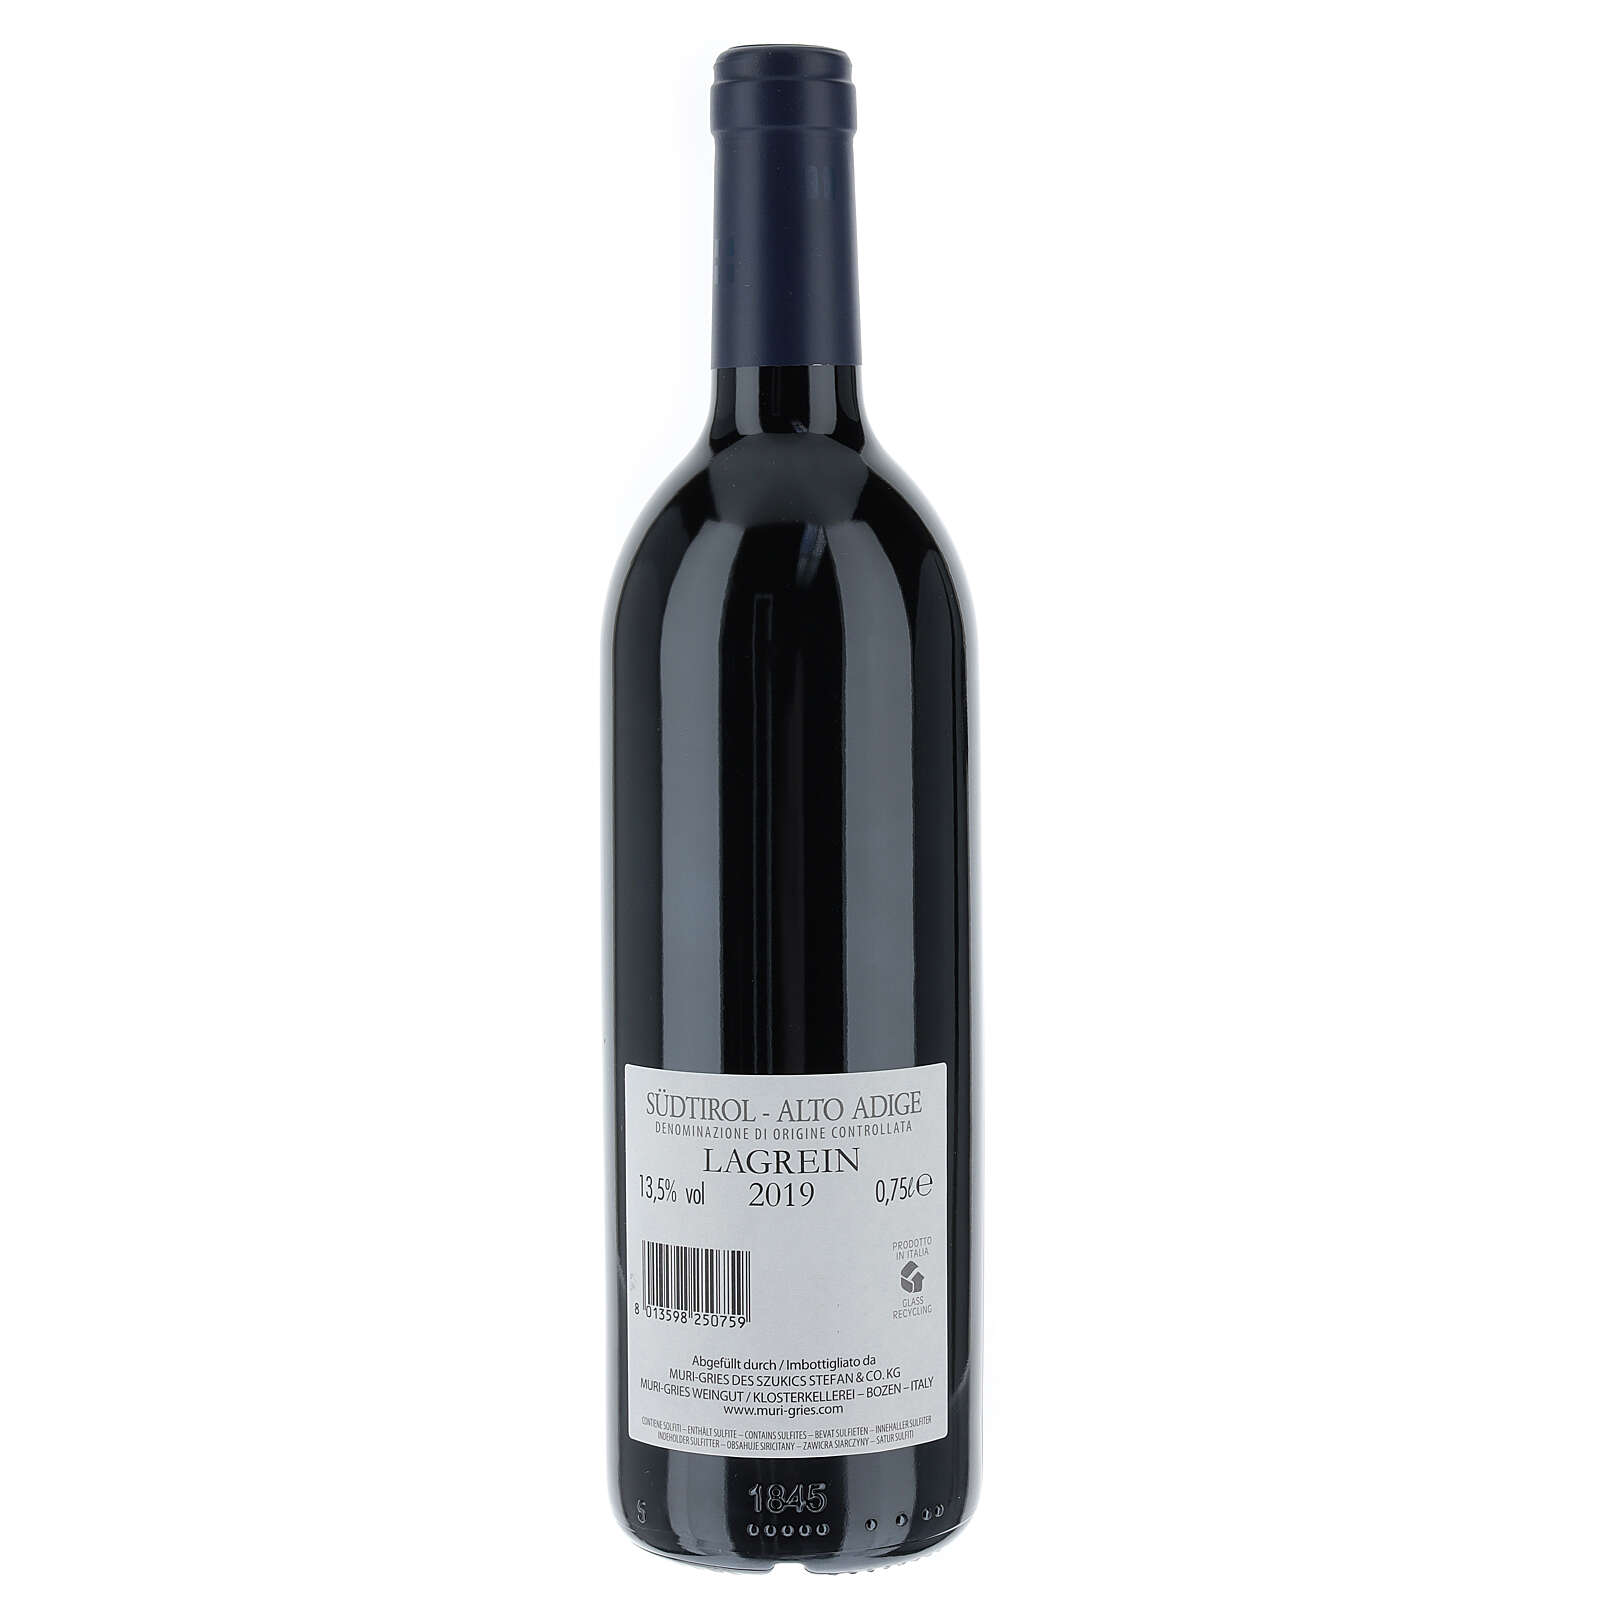 Lagrein DOC 2019 wine of the abbey Muri Gries 750 ml 3